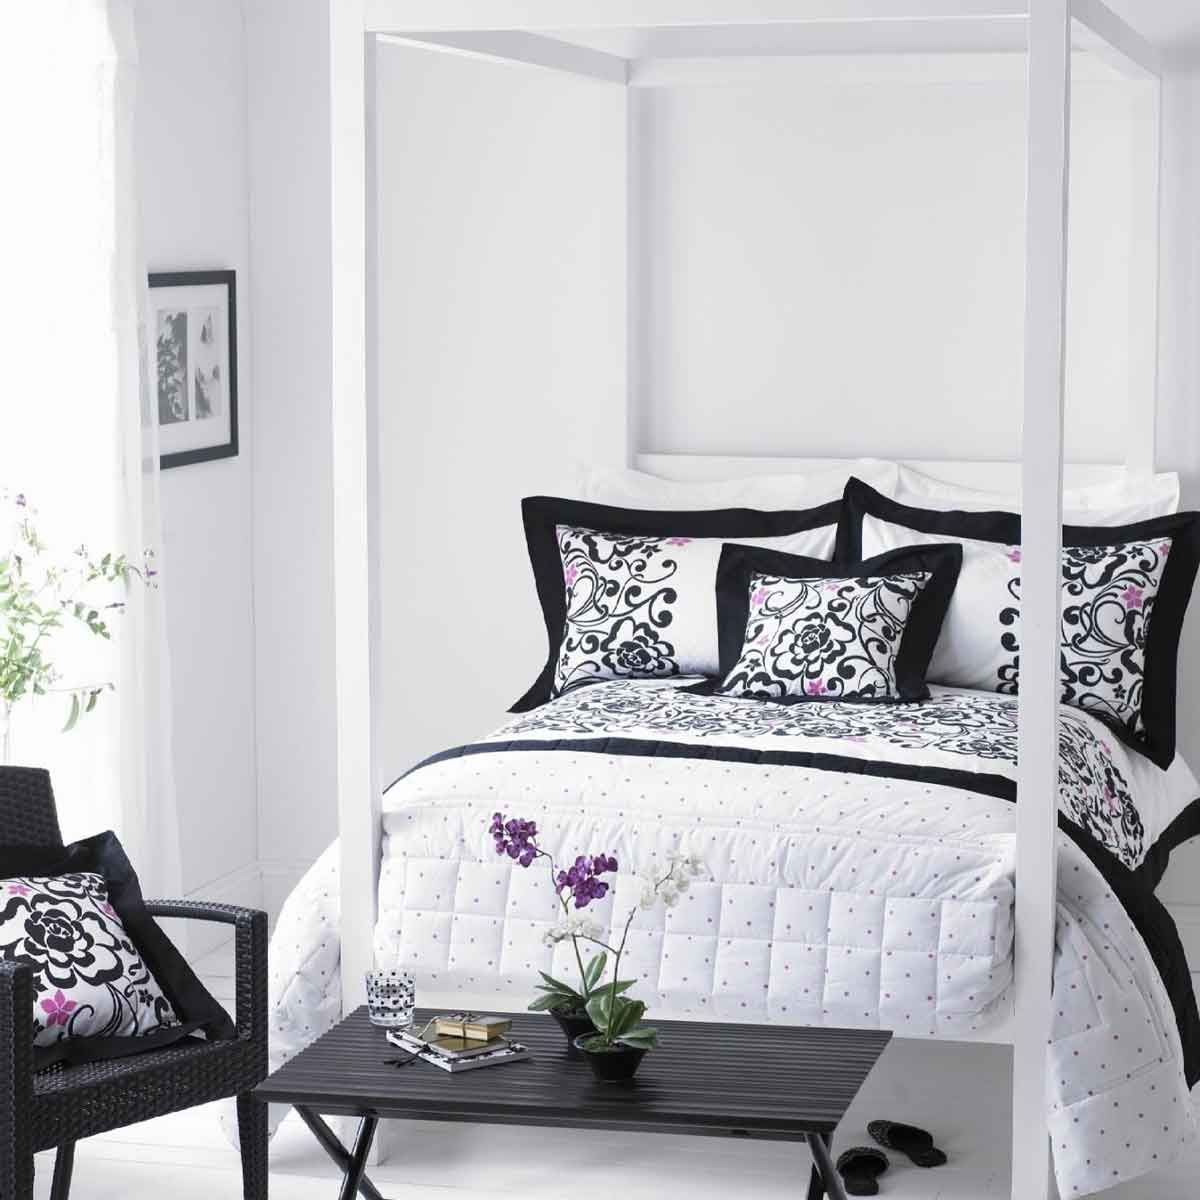 Black and white bedroom. 20 Fantastic Bedroom Color Schemes